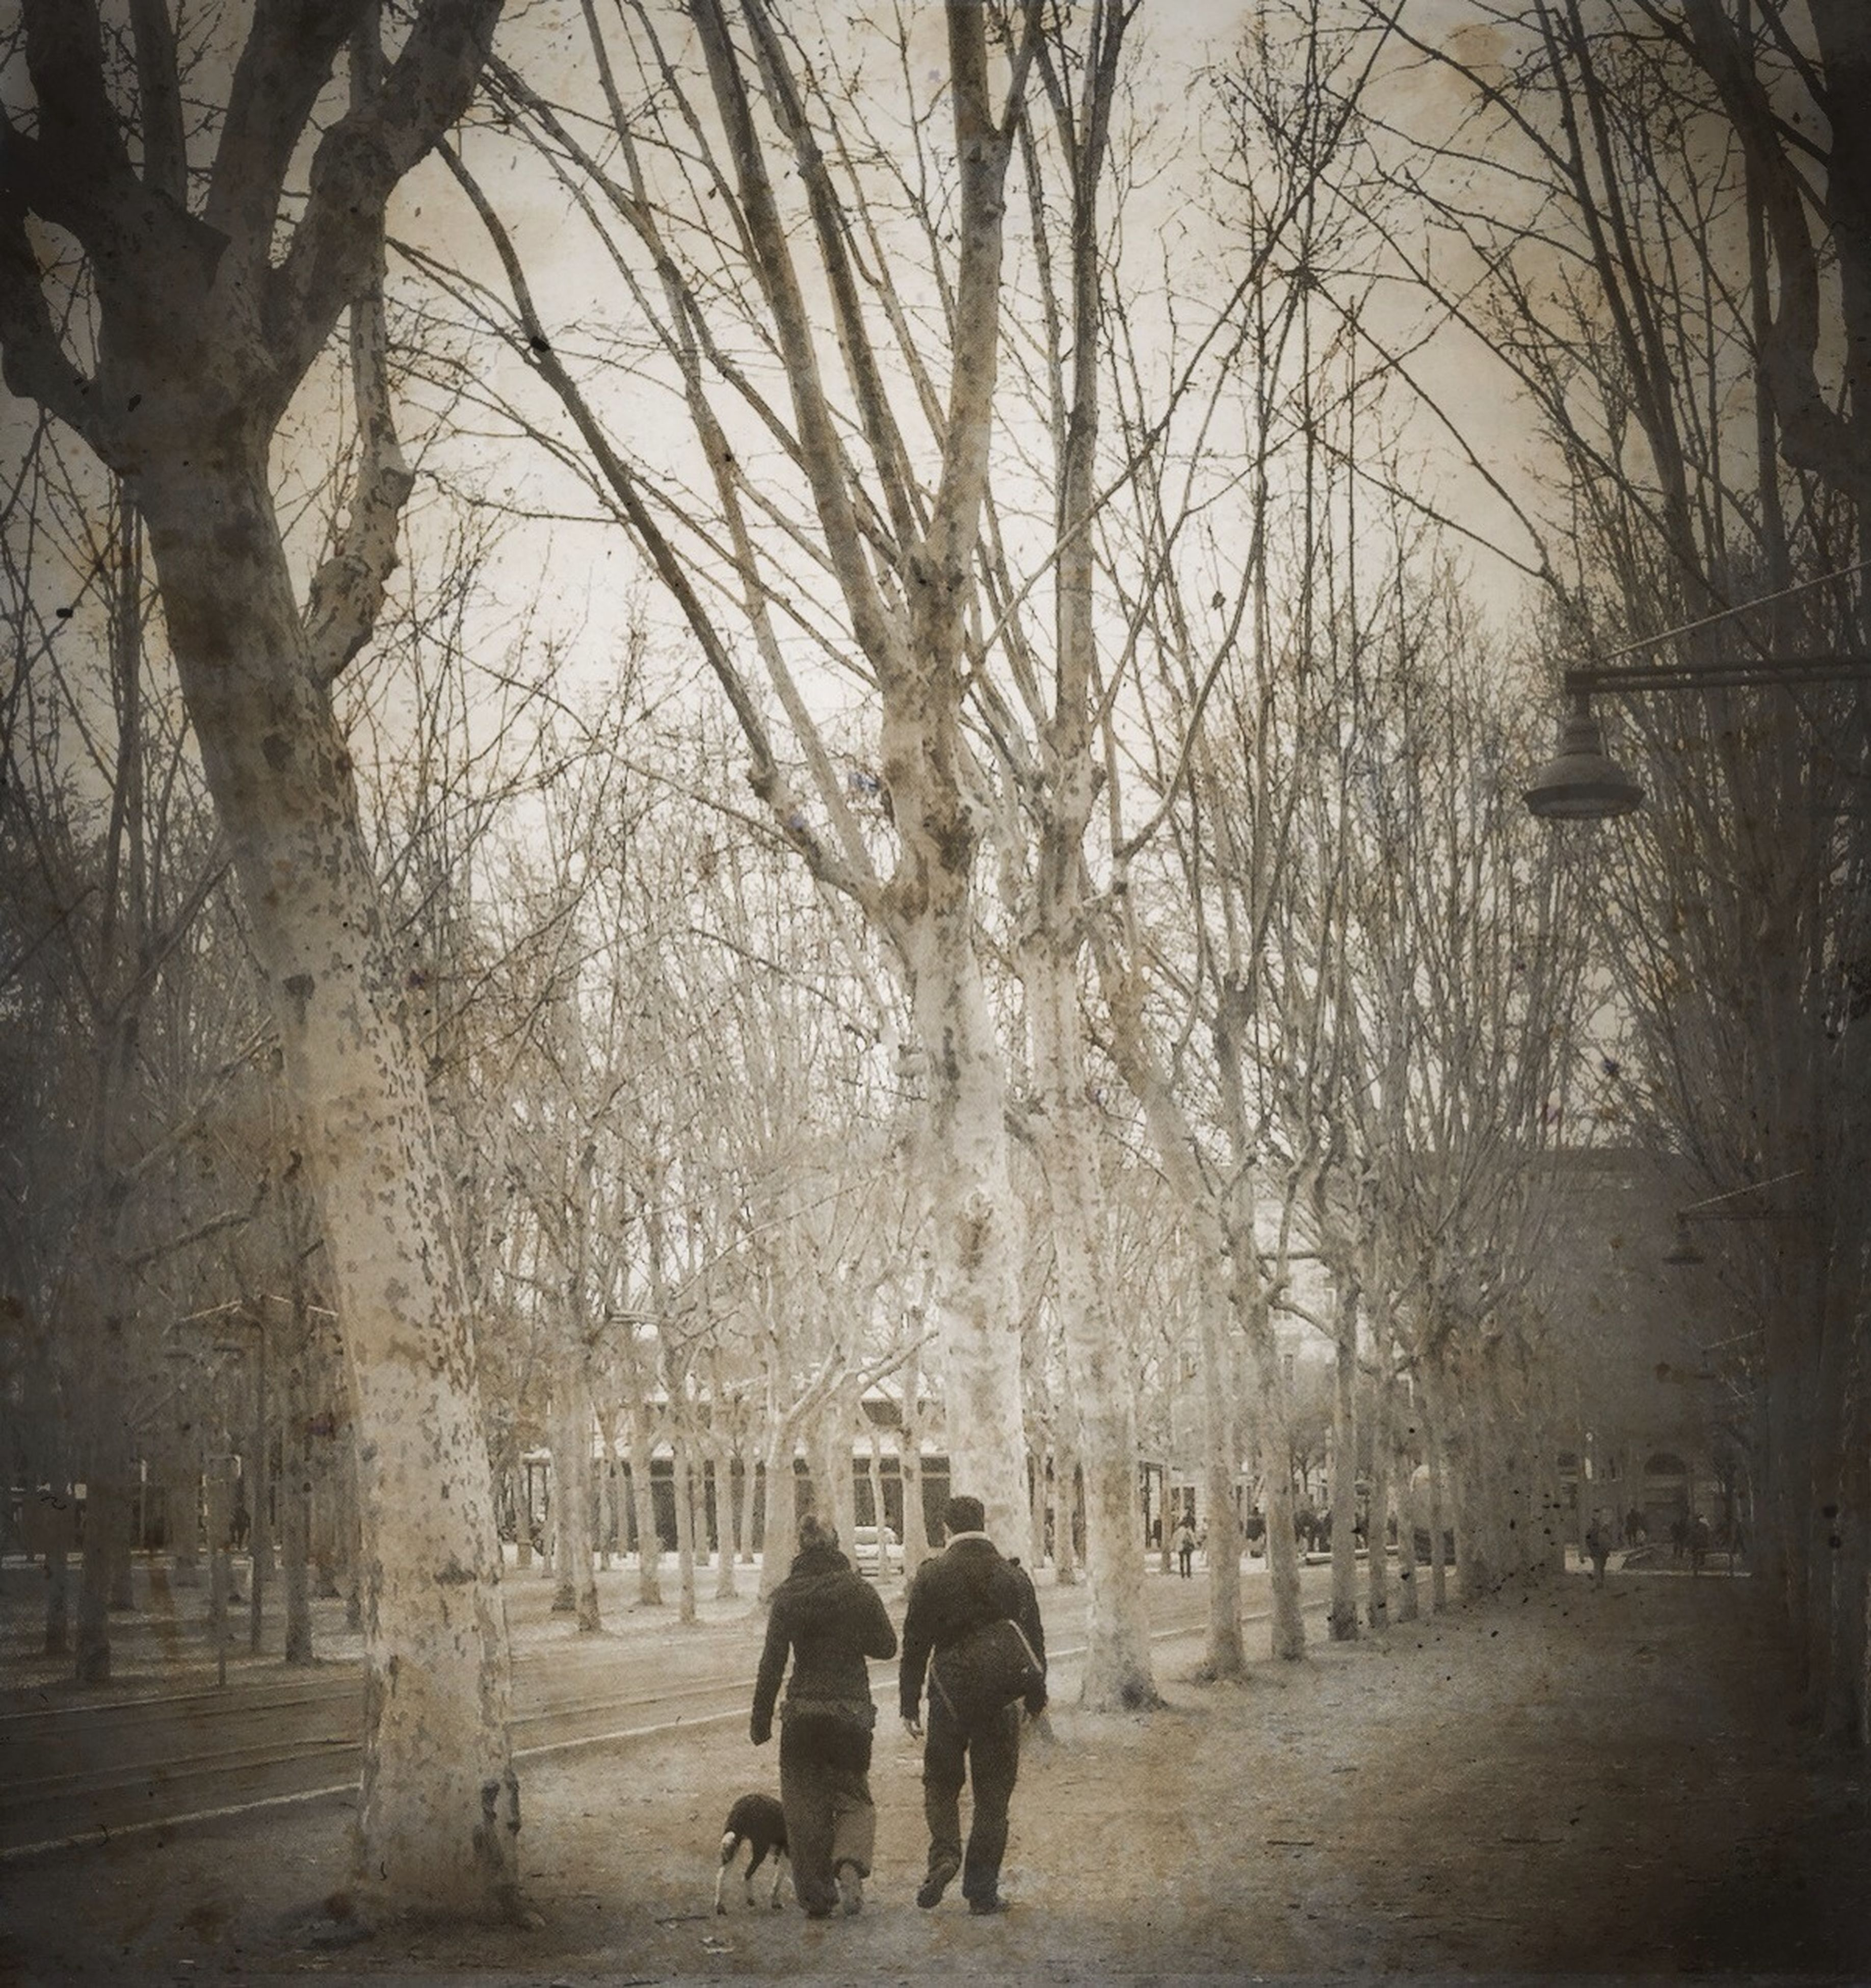 lifestyles, walking, rear view, full length, men, tree, leisure activity, person, togetherness, bare tree, season, the way forward, weather, bonding, winter, standing, footpath